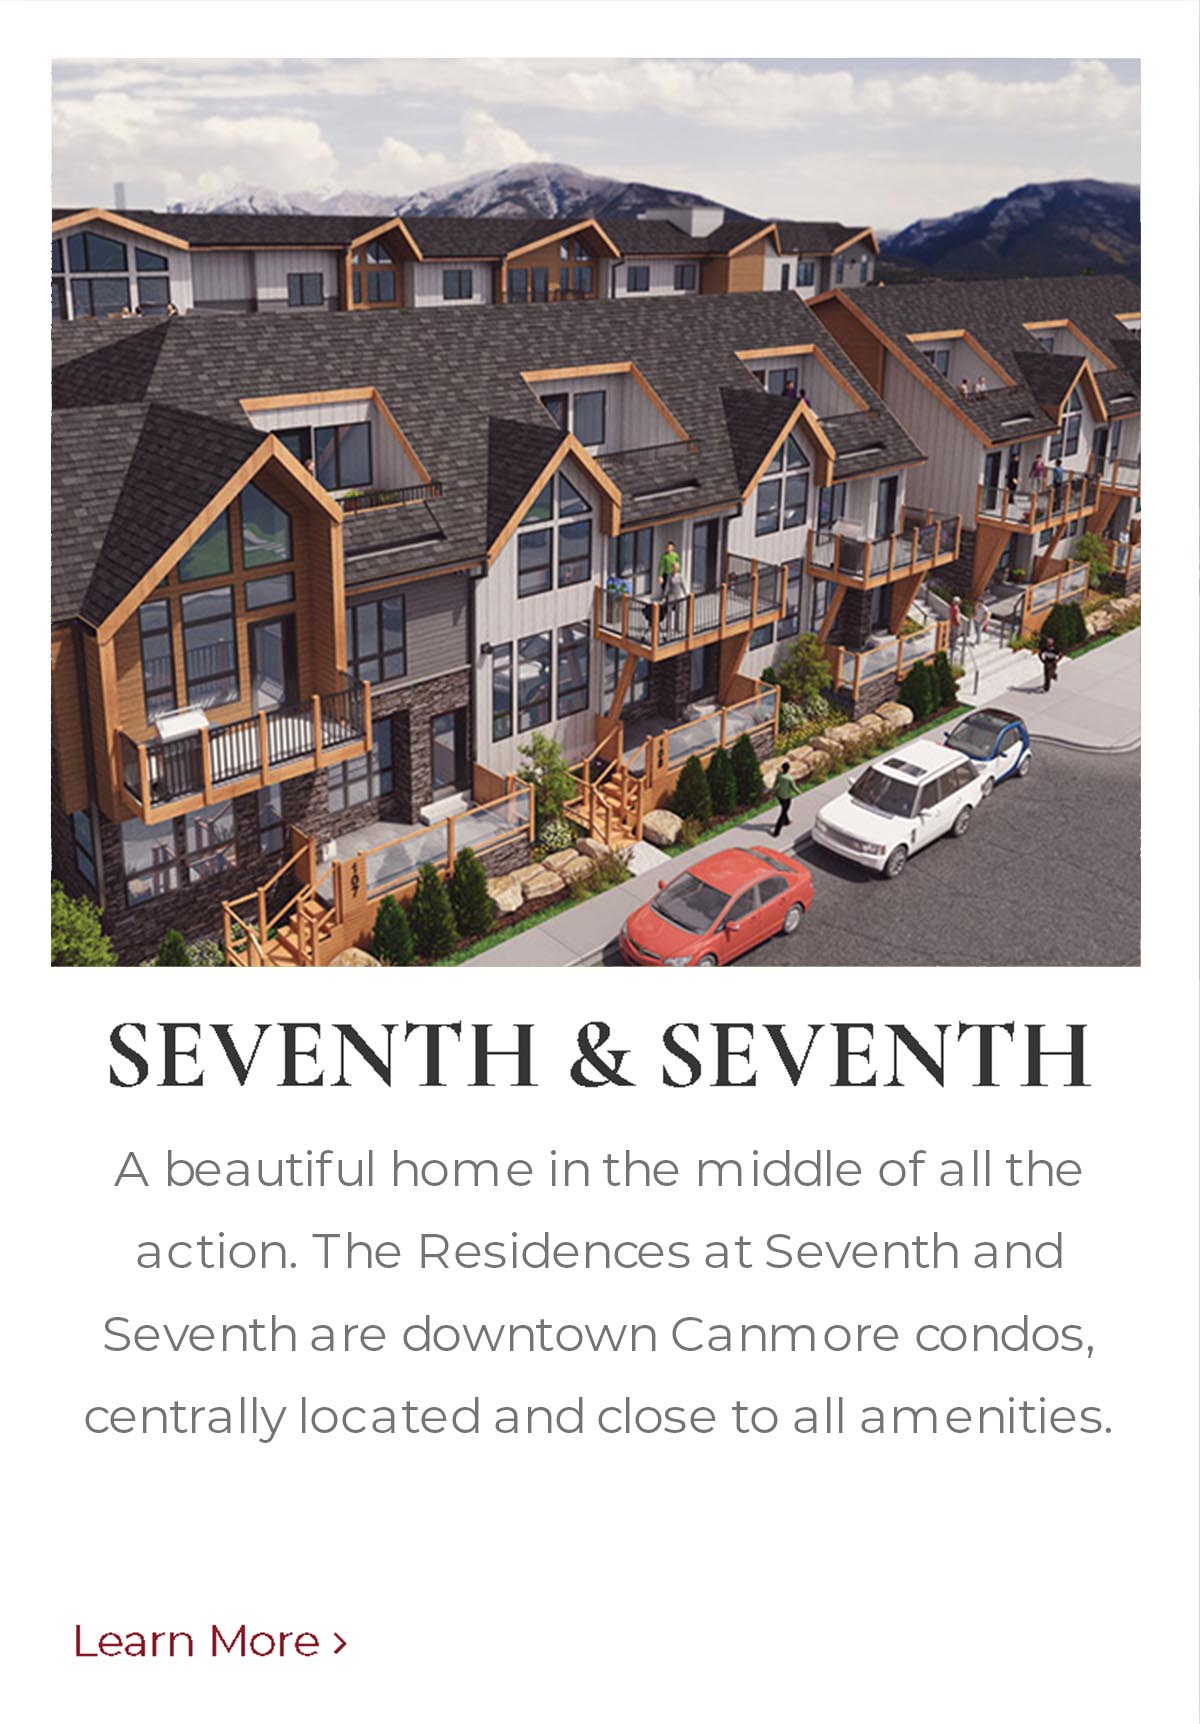 Seventh and Seventh, homes built by Distinctive Homes